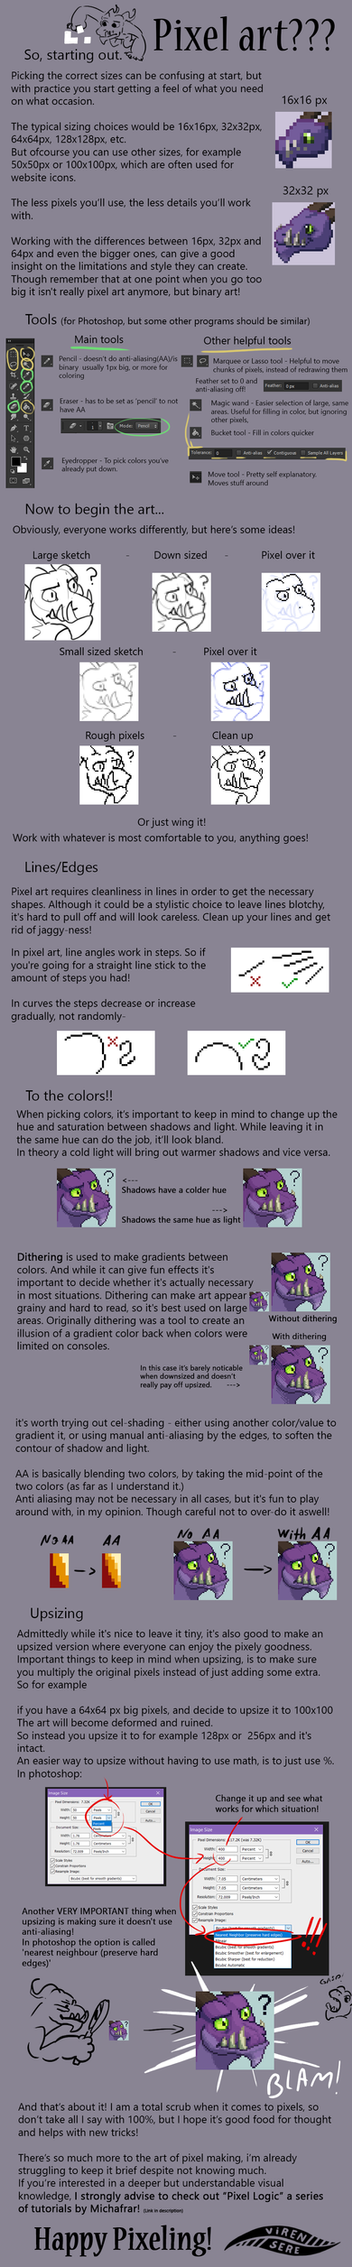 Viren's Pixel Tutorial by Virensere